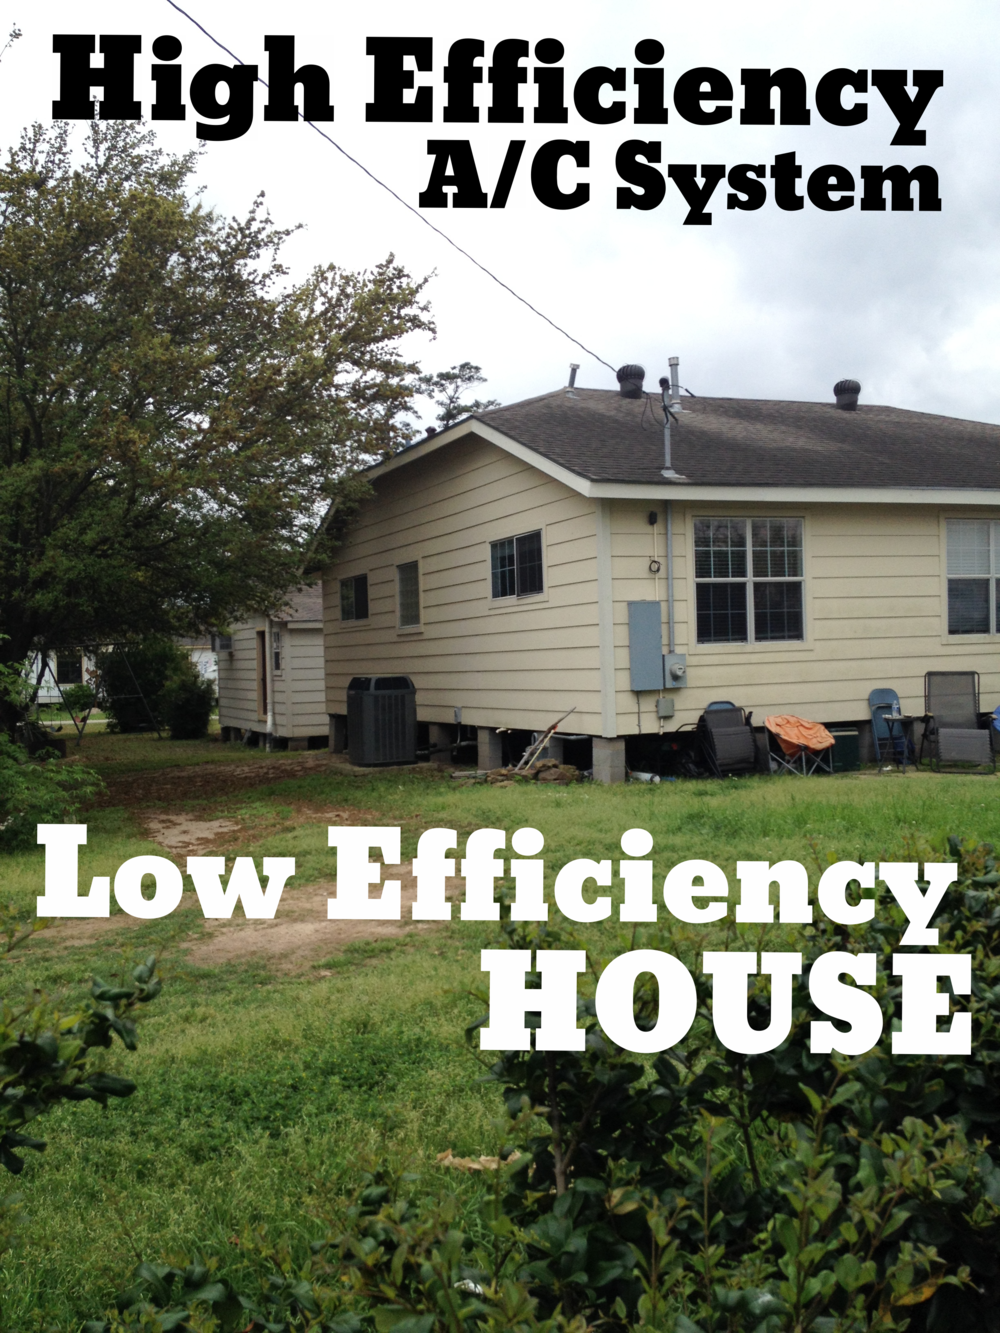 High Efficiency A/C on a low efficiency house.